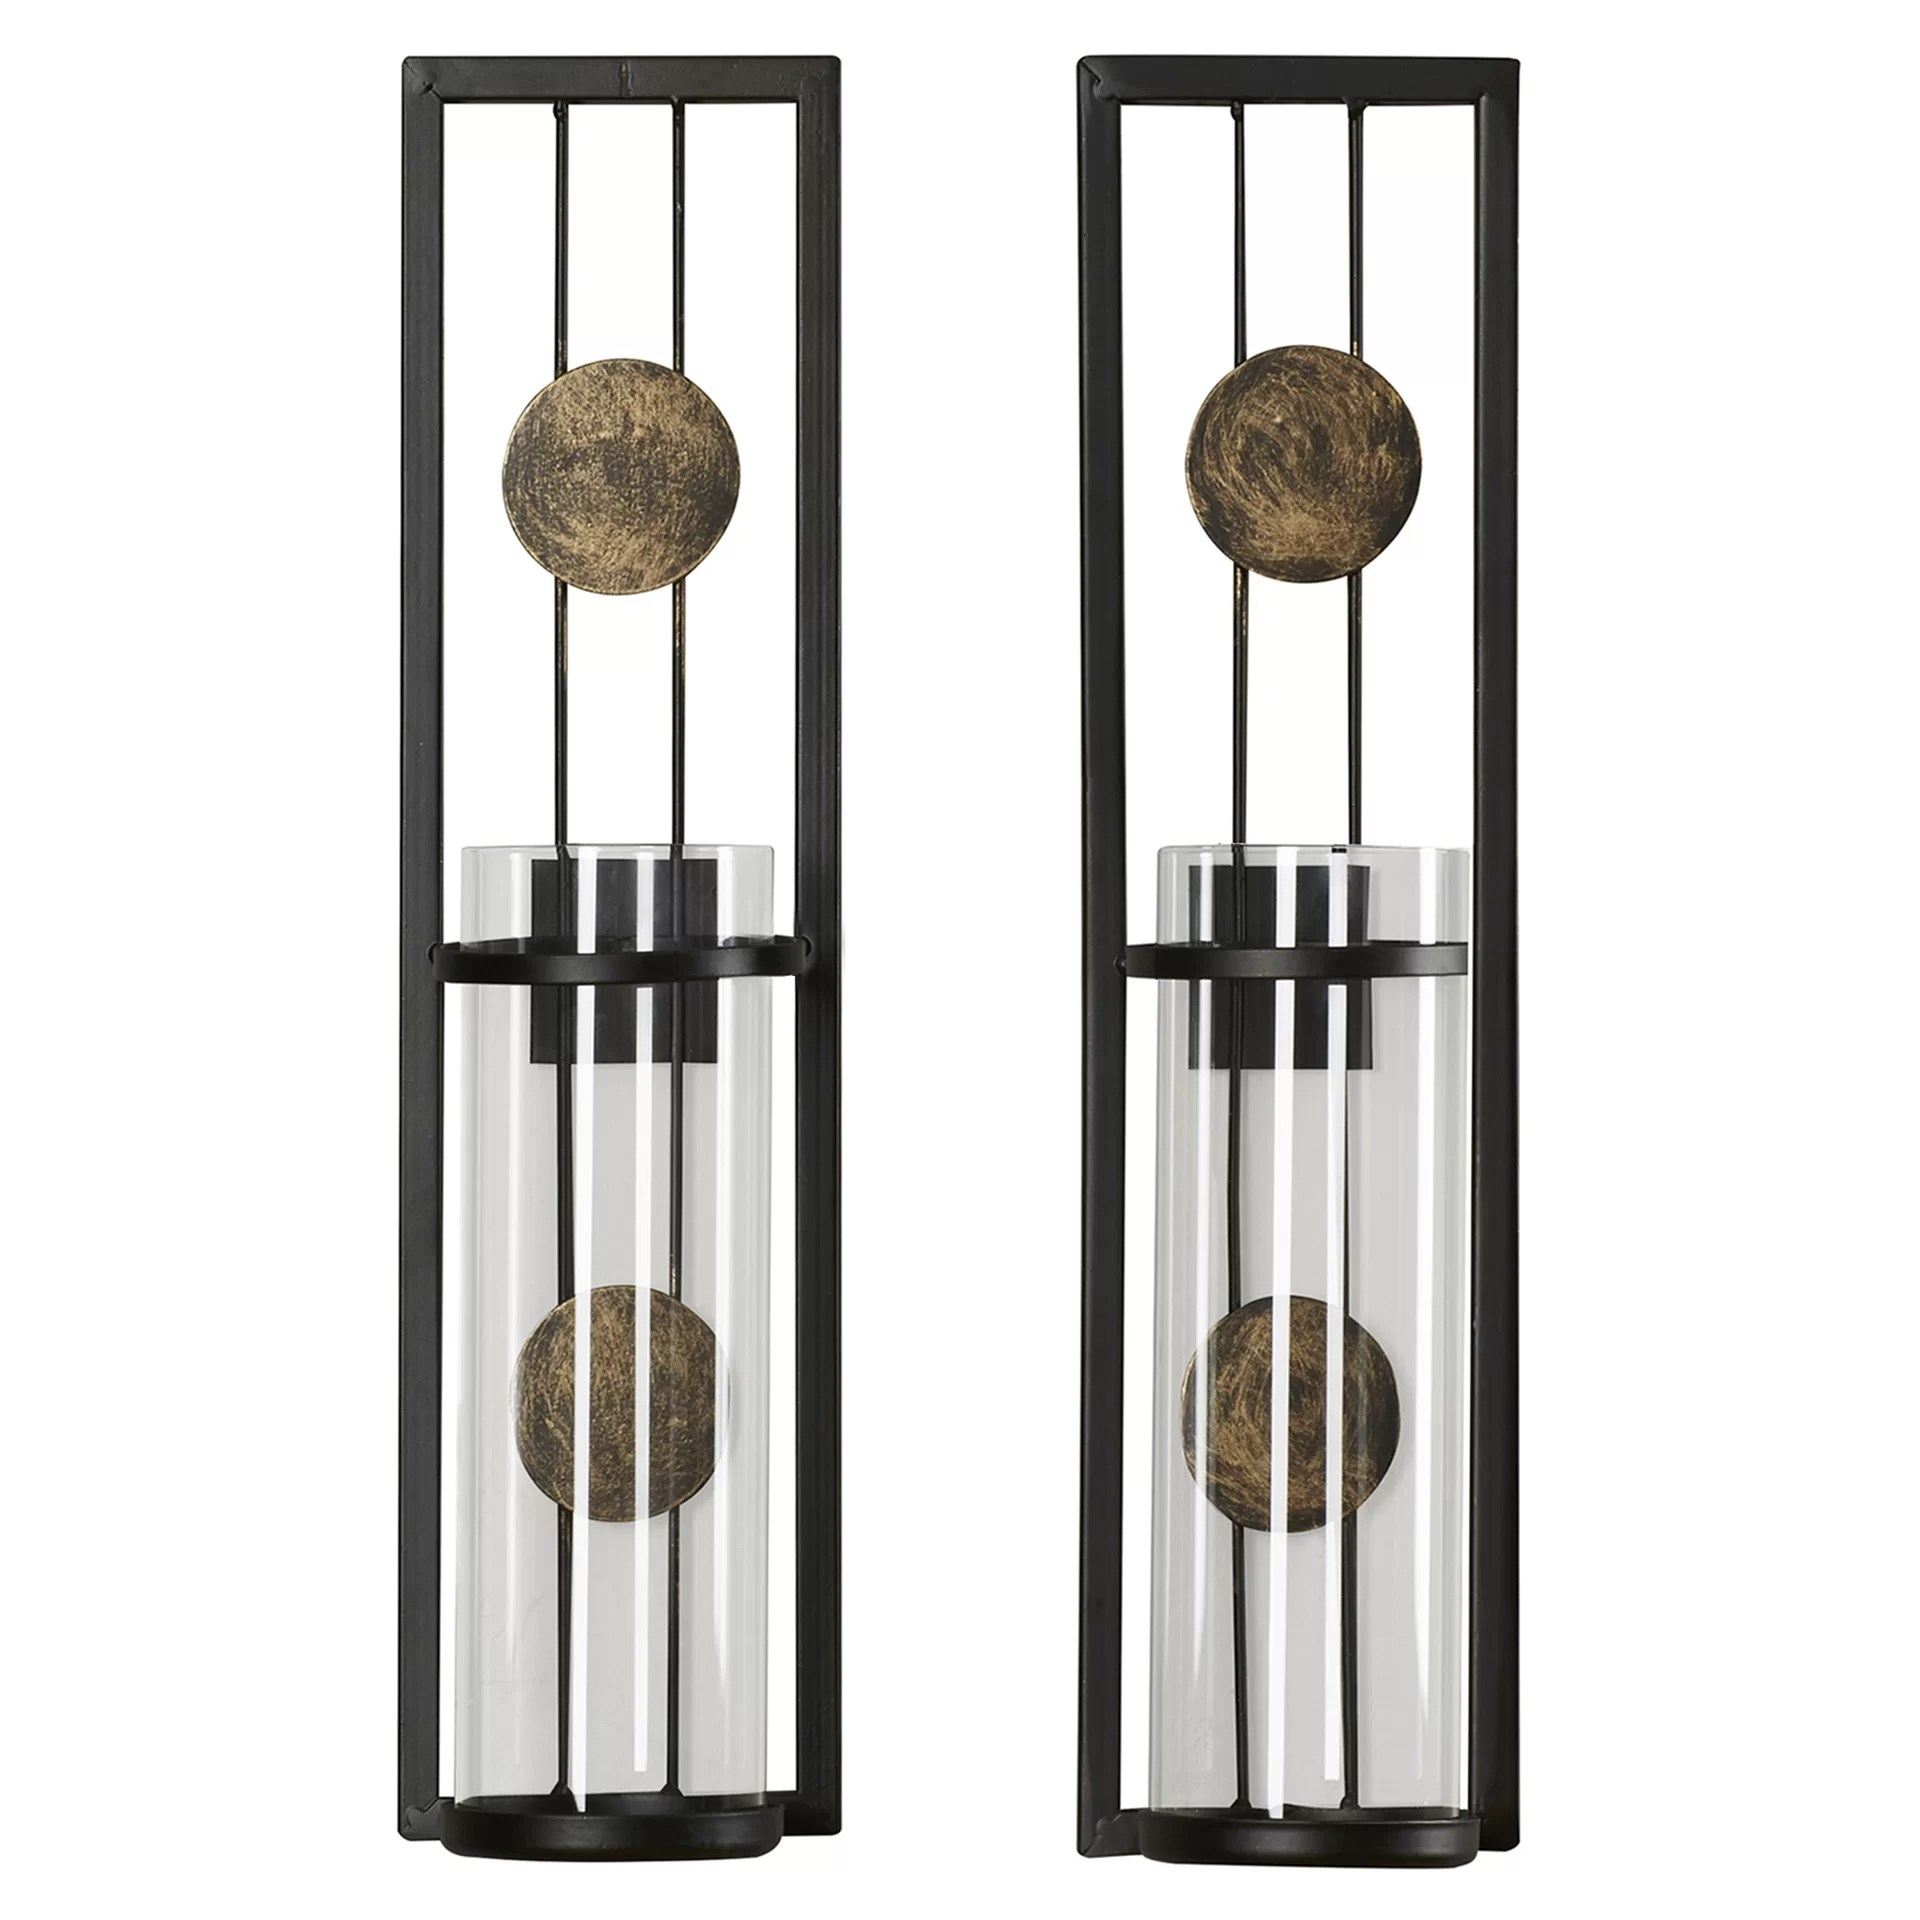 Brayden Studio Contemporary Wall Sconce Candle Holder